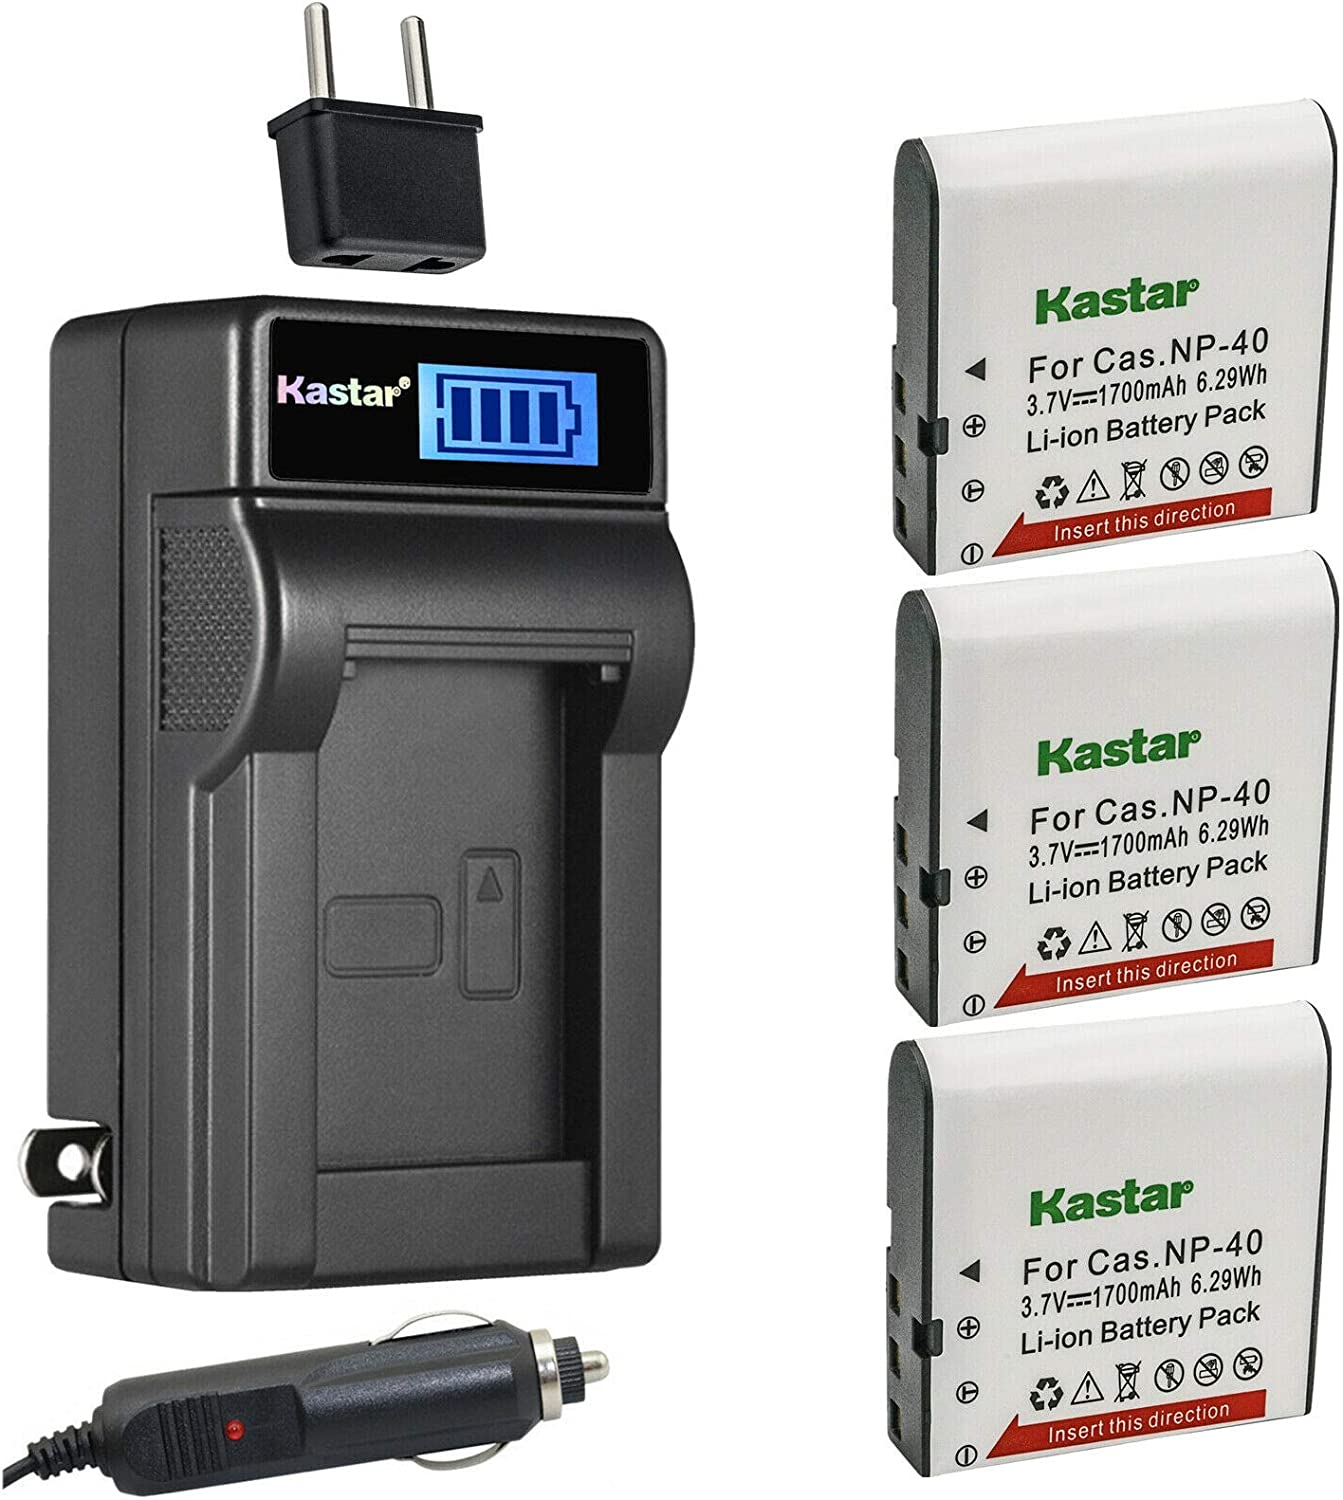 Kastar 3-Pack GB-60 Battery and LCD AC Charger Compatible with GE GB-60 GB60 Battery, GE GE X600 GE General Imaging Power Pro X600 Digital Camera SOSUN Sosun 301S-Plus Camera Camcorder